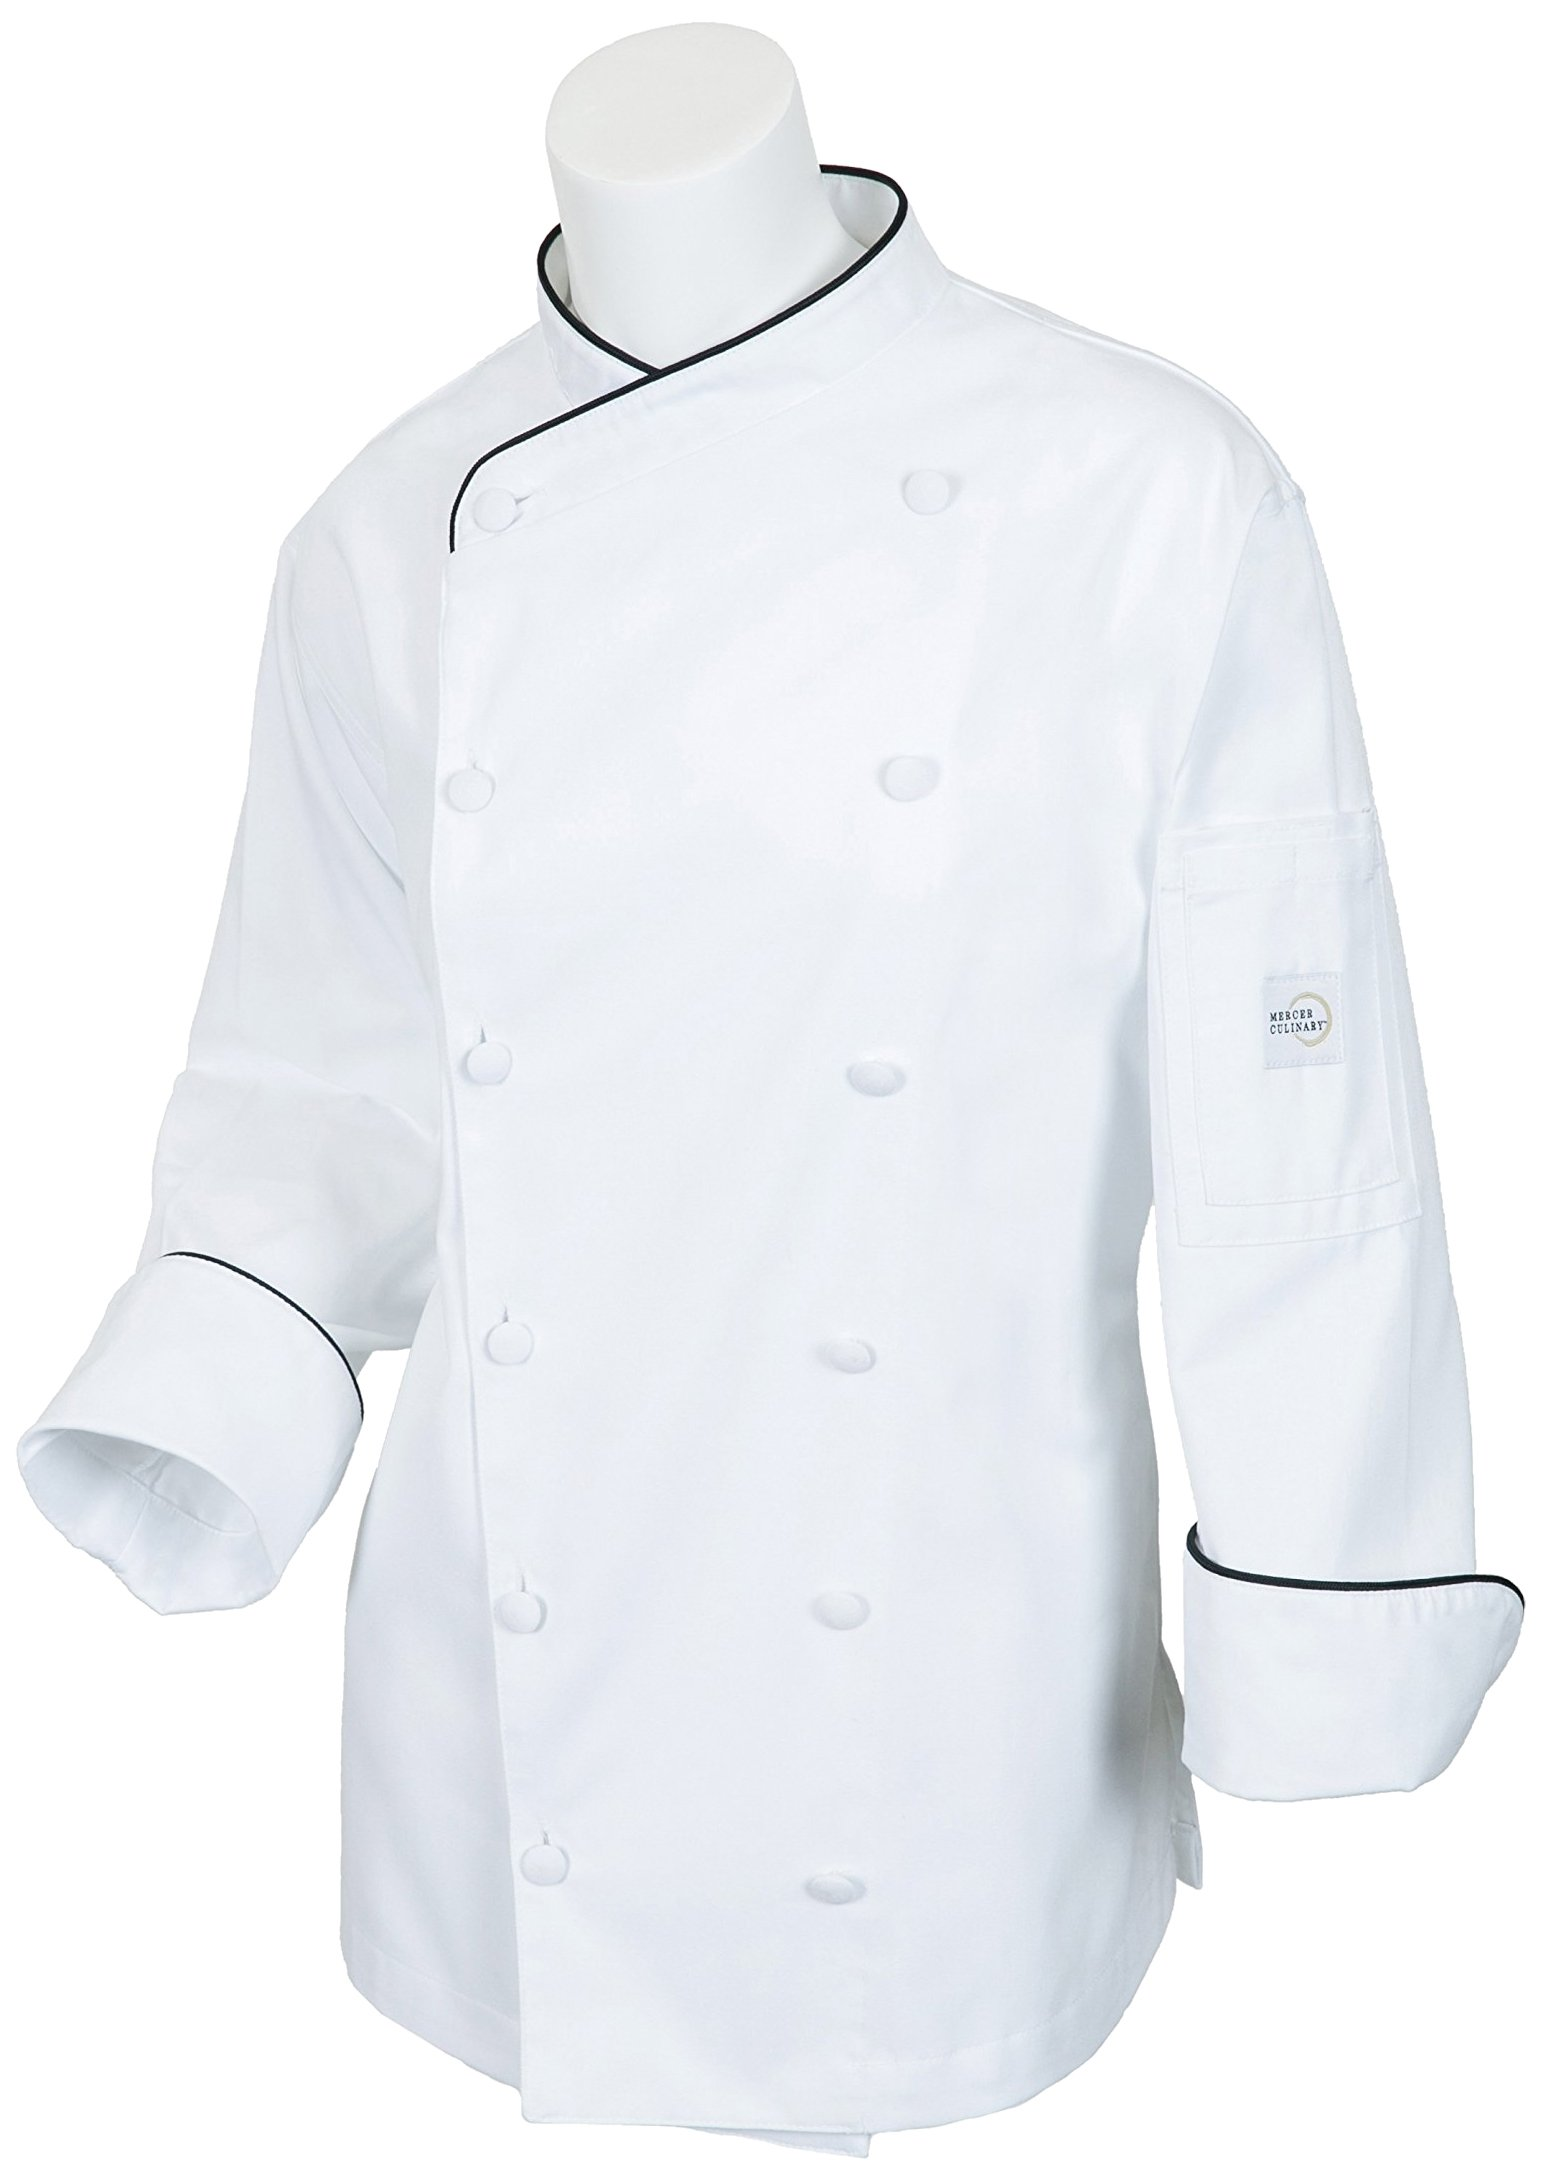 Mercer Culinary M62050WB2X Renaissance Women's Scoop Neck Chef Jacket, XX-Large,White with Black Piping